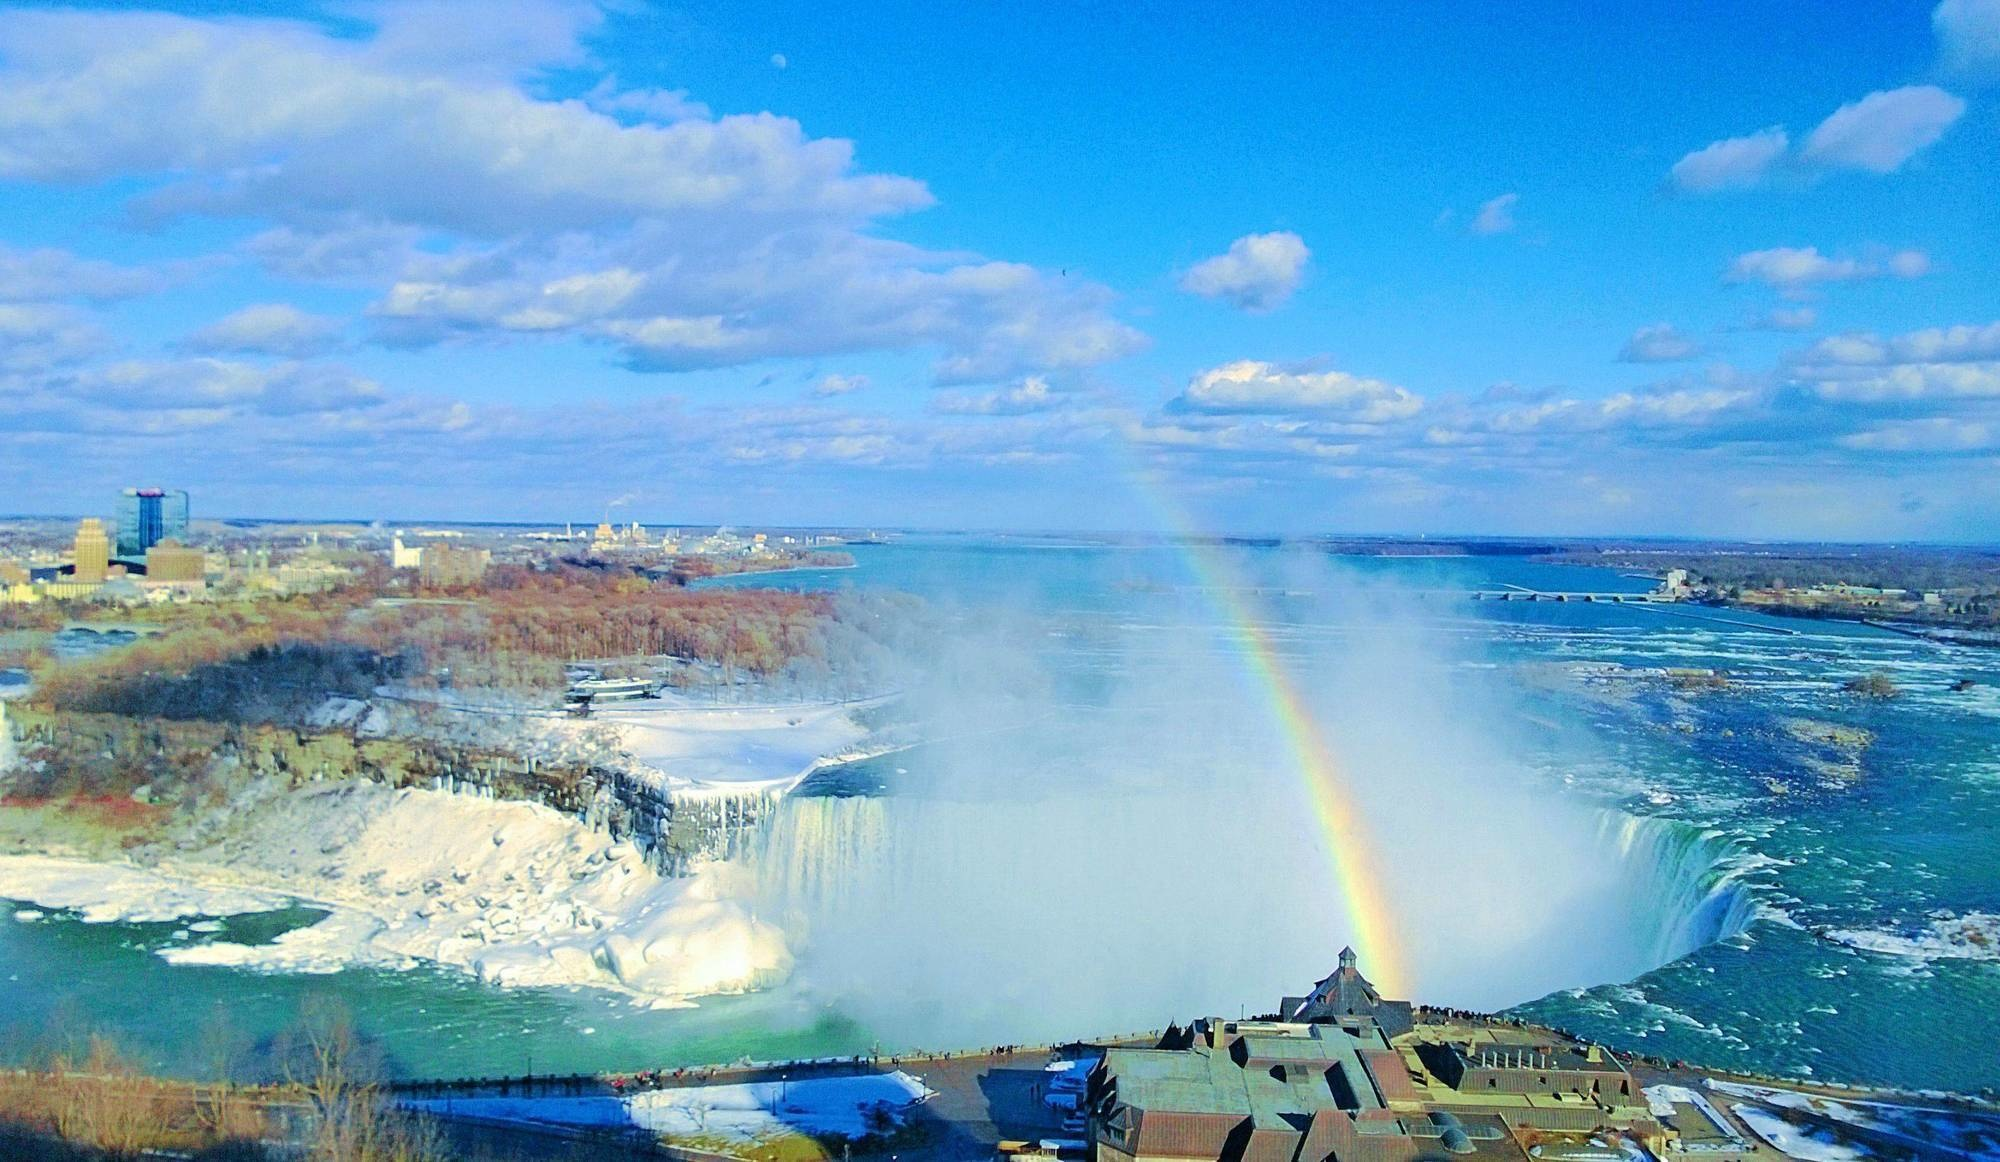 Another excellent view of Niagara Falls.